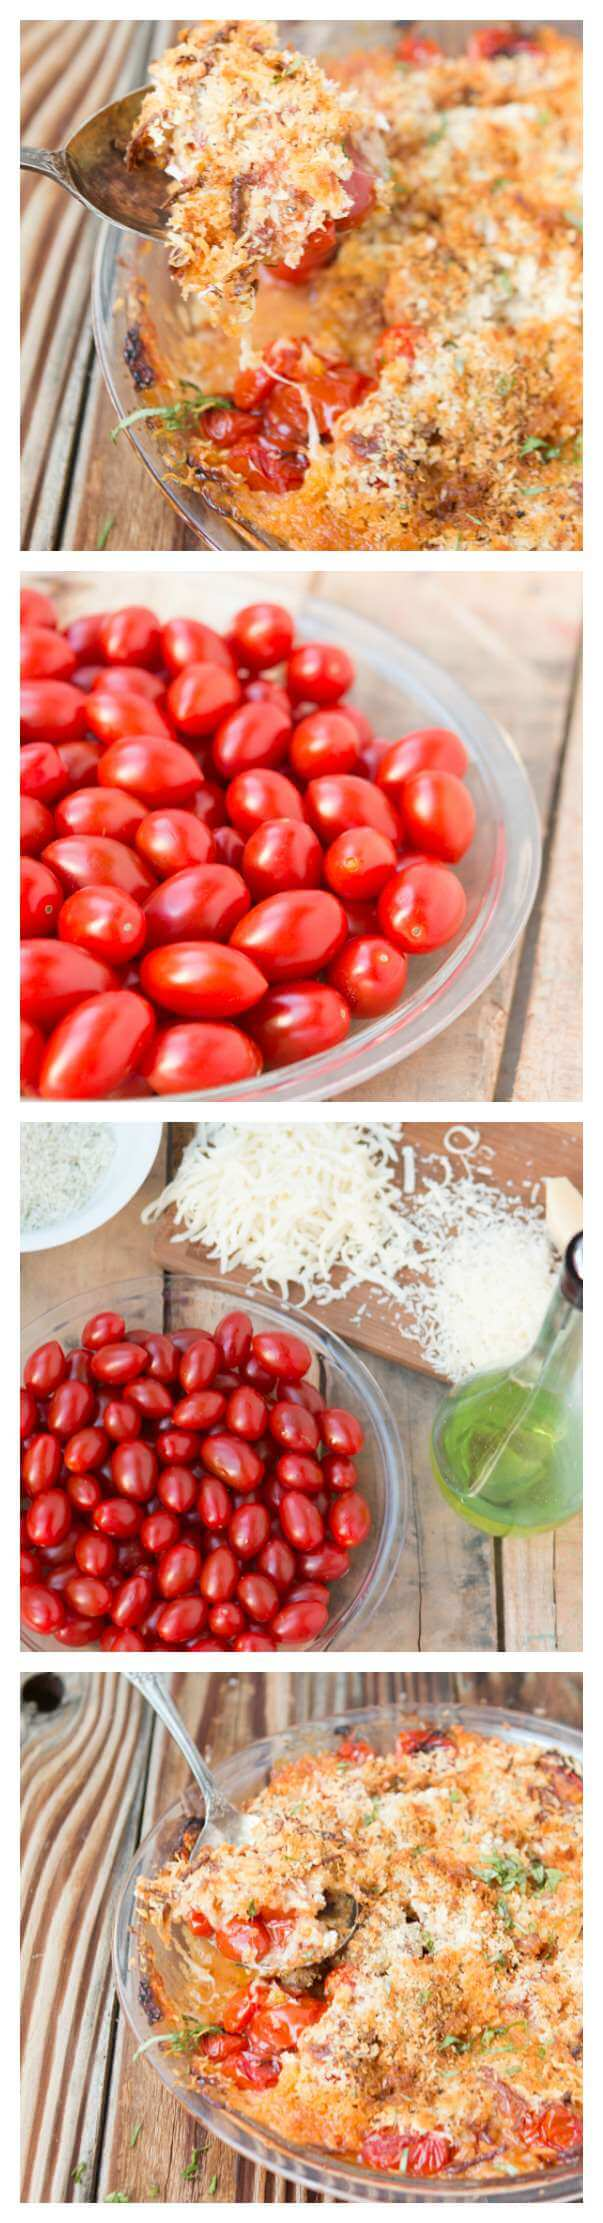 5 Gardening Tips and tomato gratin ohsweetbasil.com